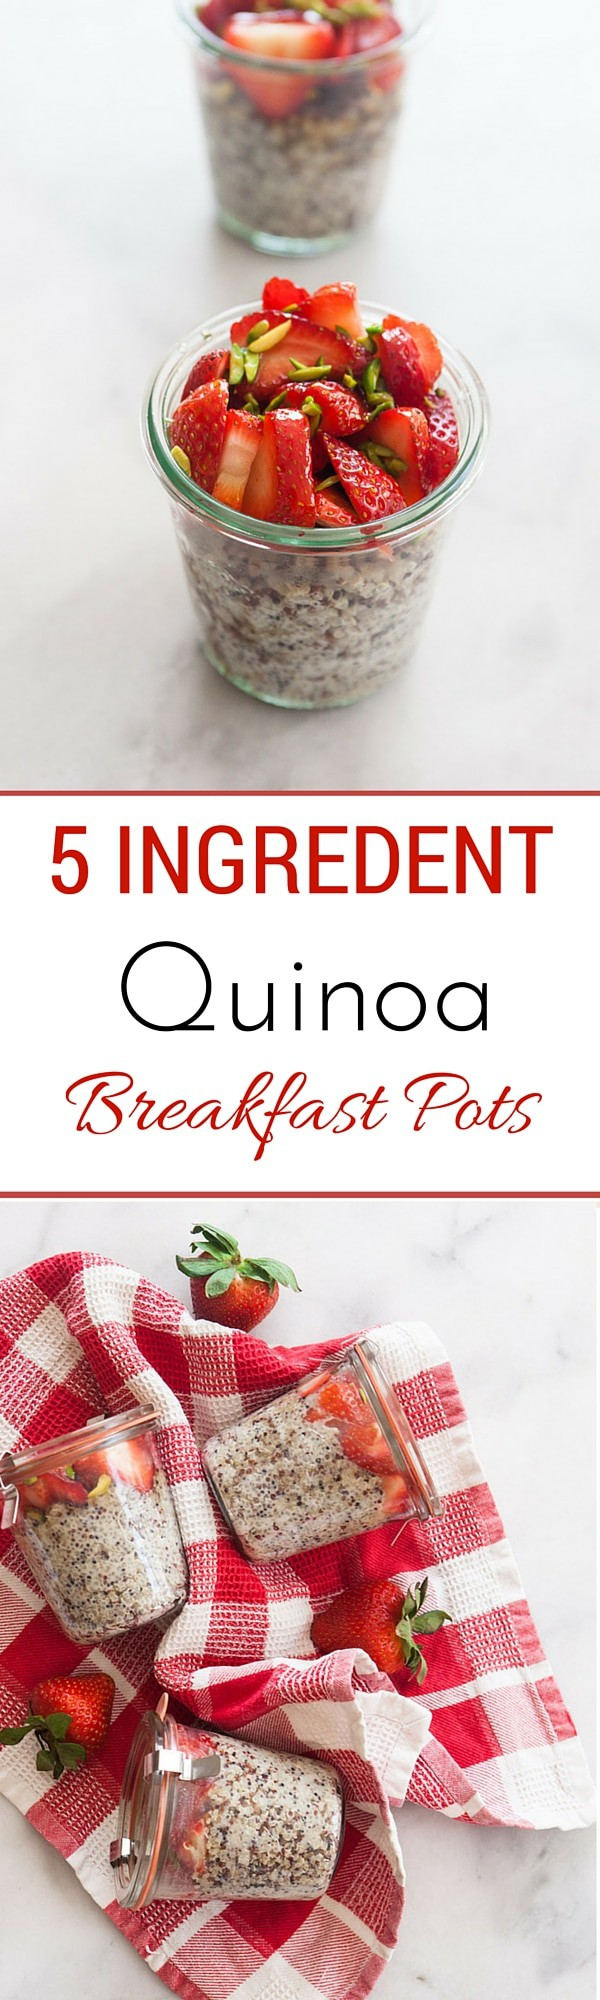 5 Ingredient Quinoa Breakfast Pots